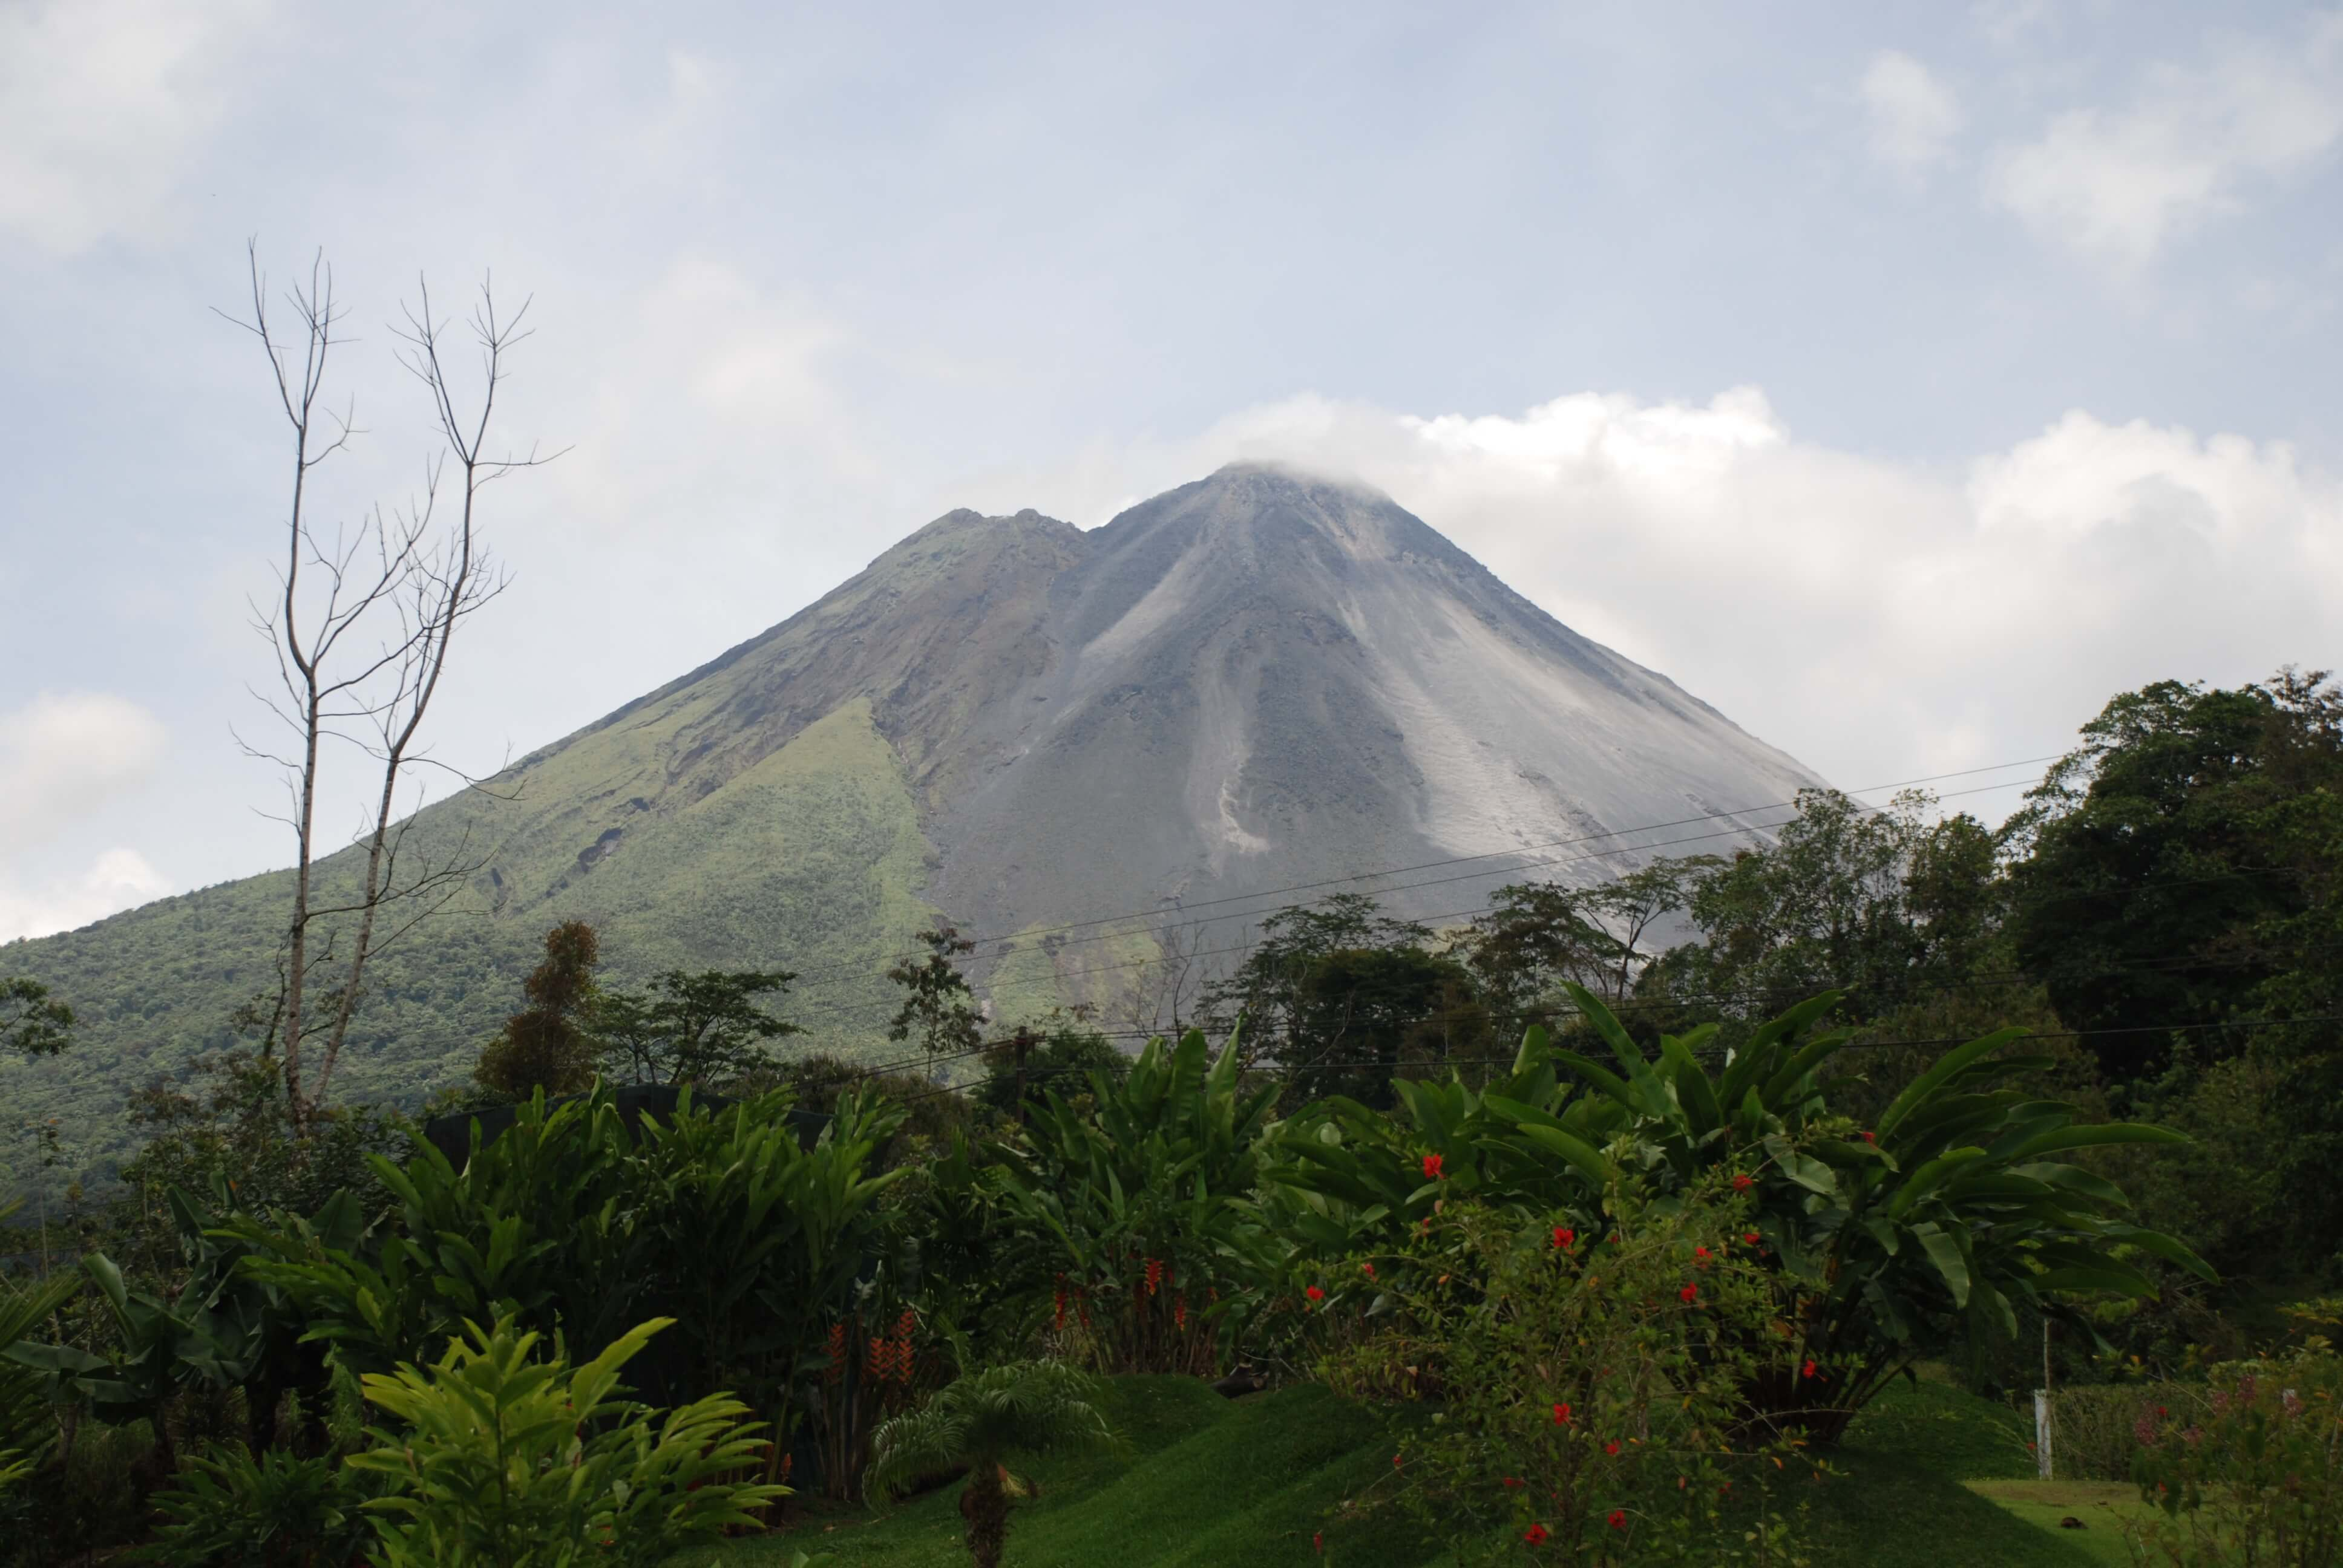 Arenal Volcano Is A Hot Spot Destination And Must See In Costa Rica An Otherwise Dormant That Erupted